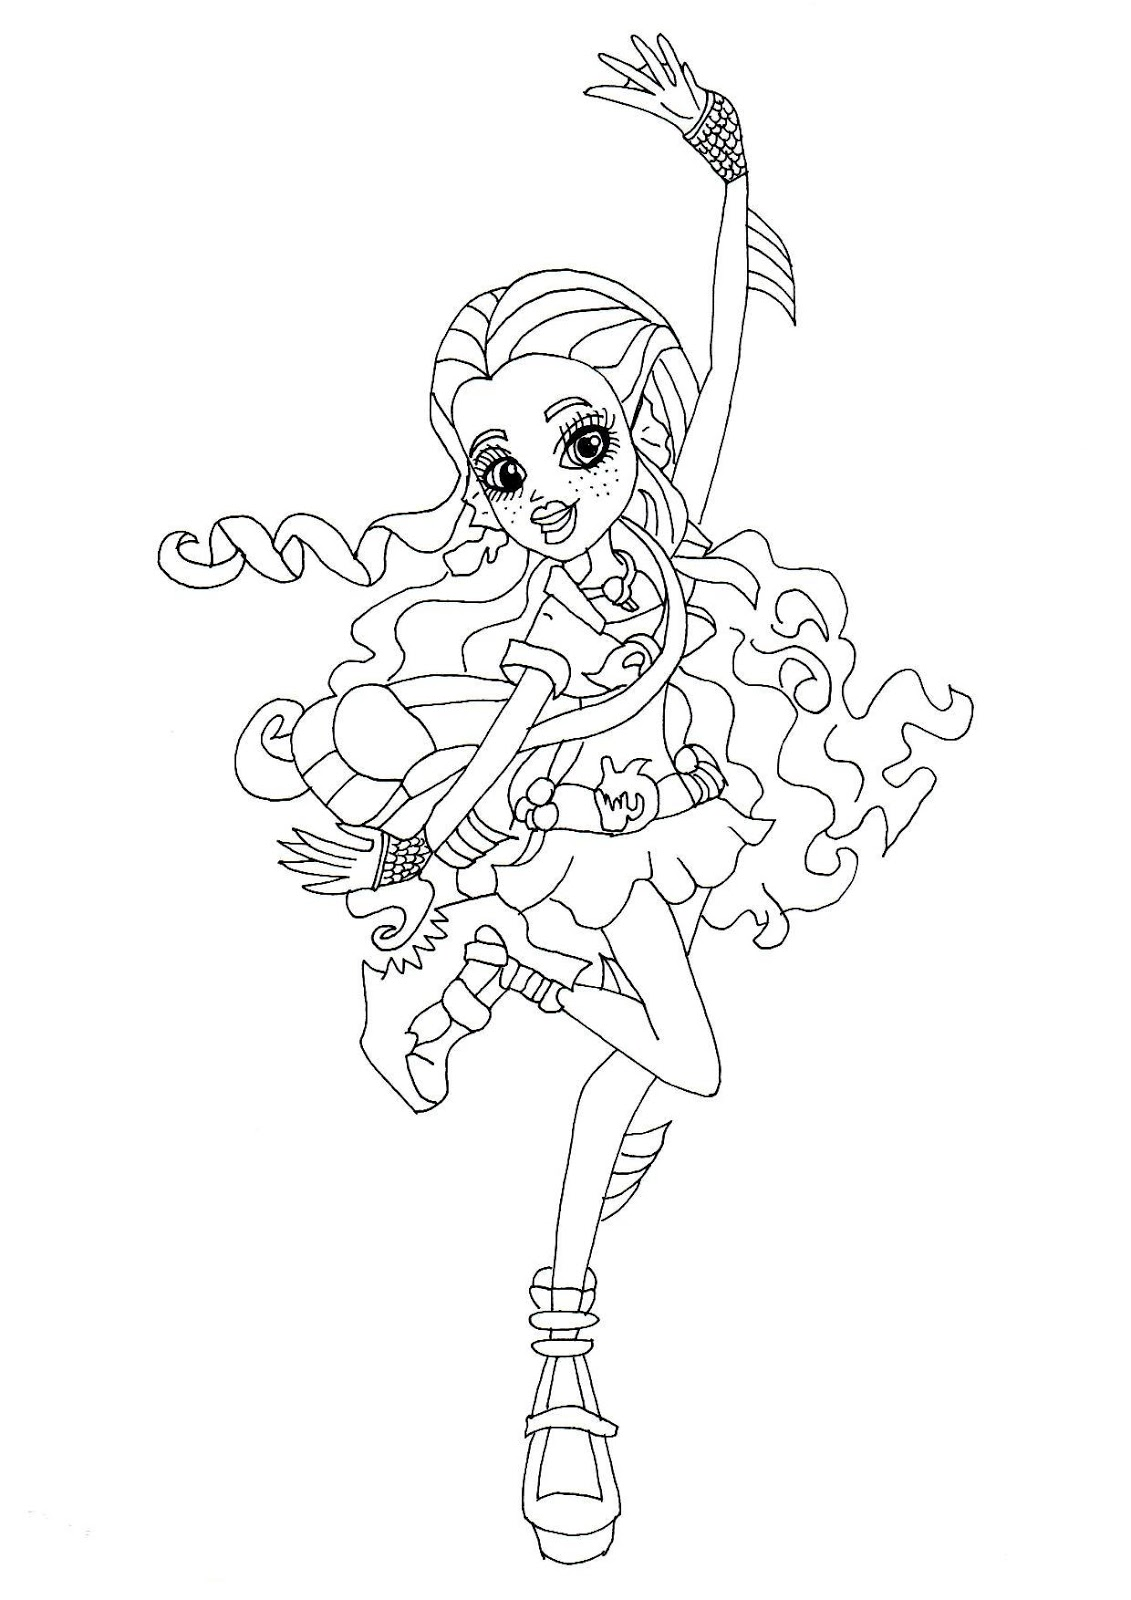 lagoona blue printable coloring pages - photo#27